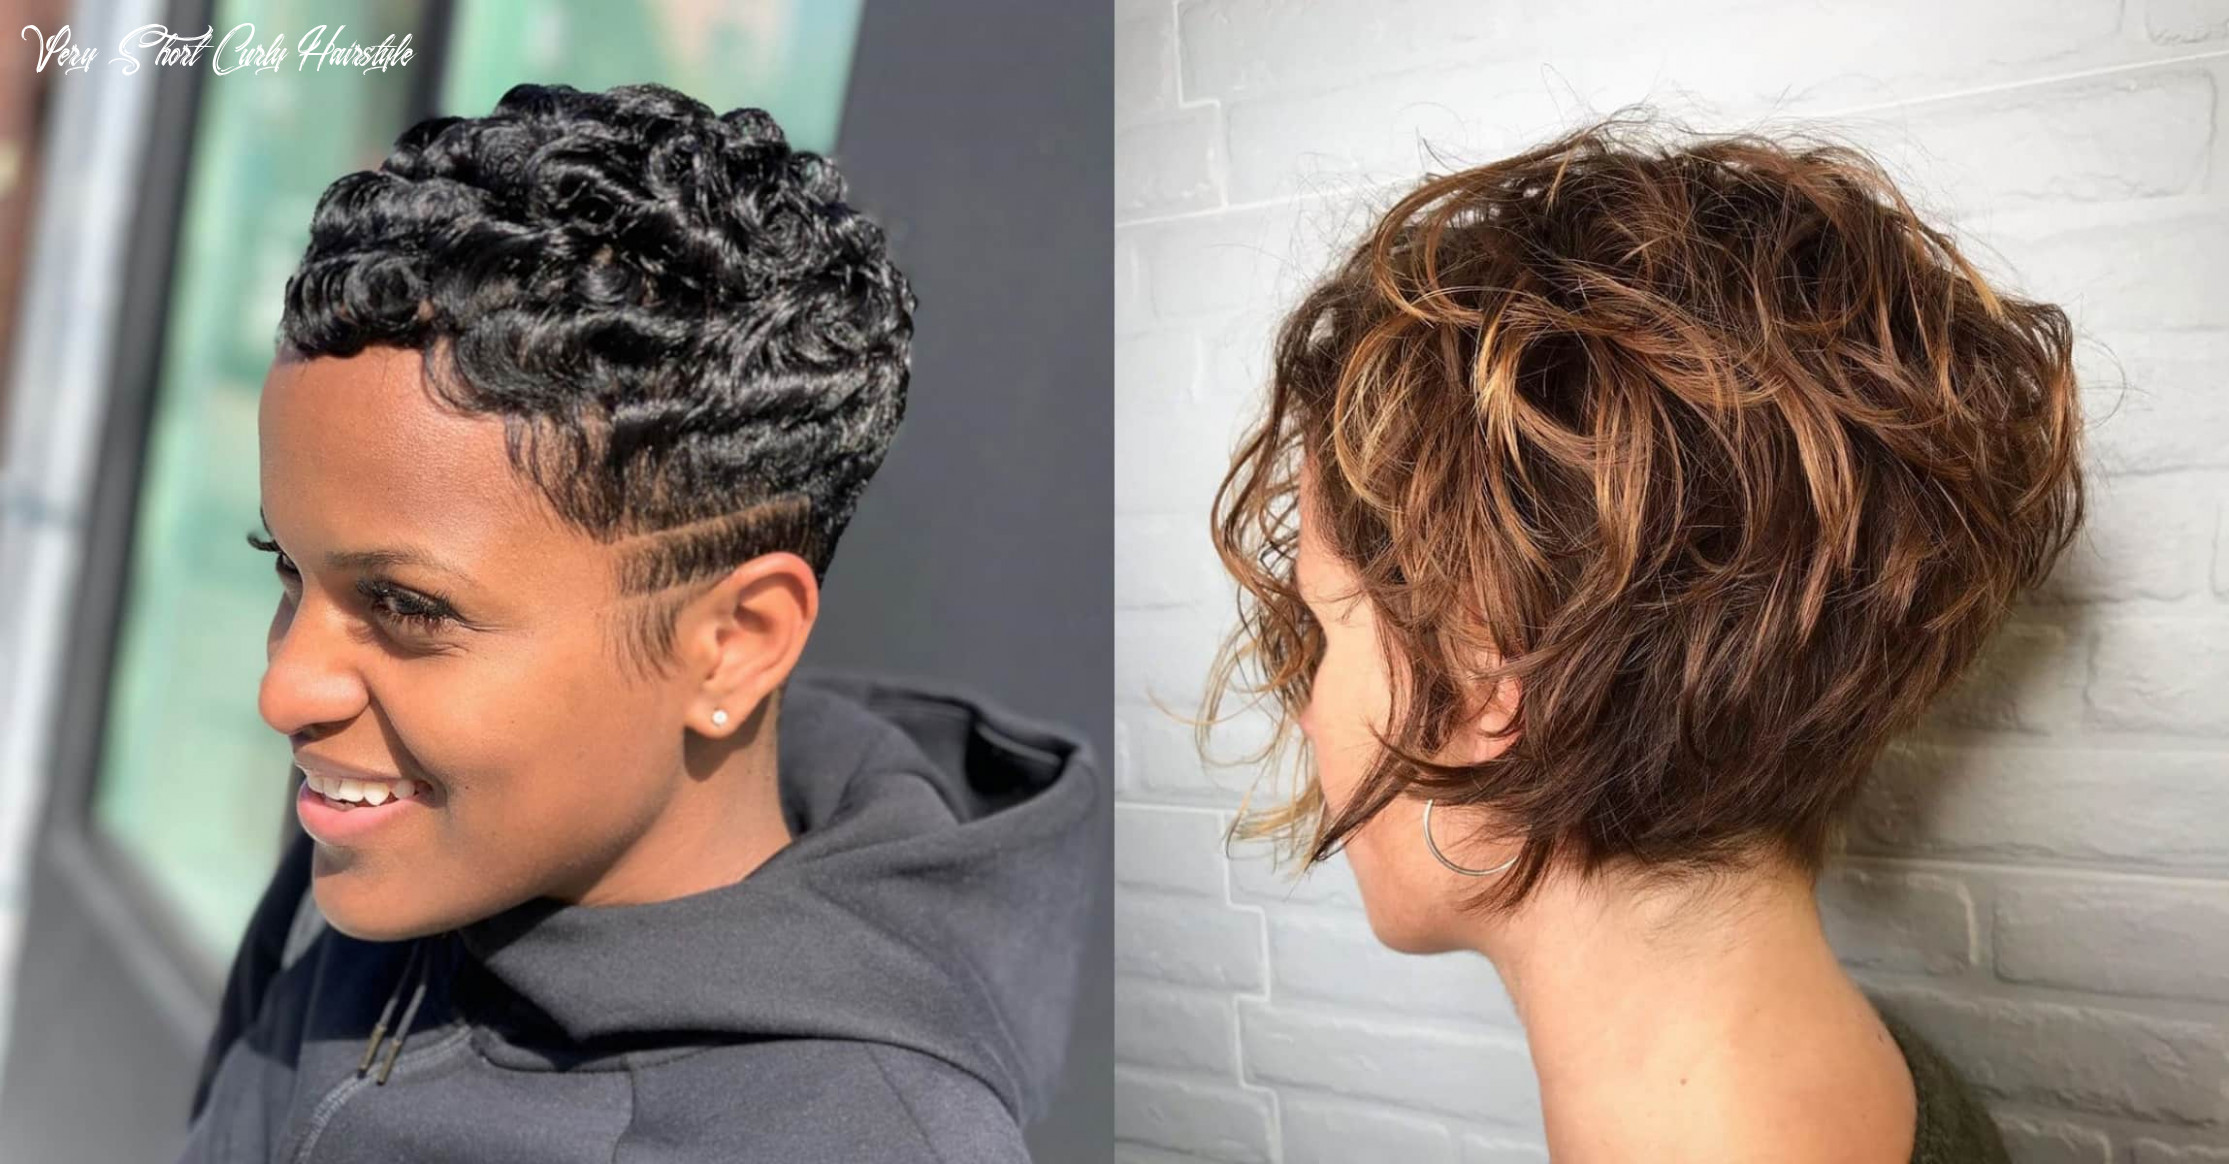 8 perfect looks for short curly hair | stylesrant very short curly hairstyle